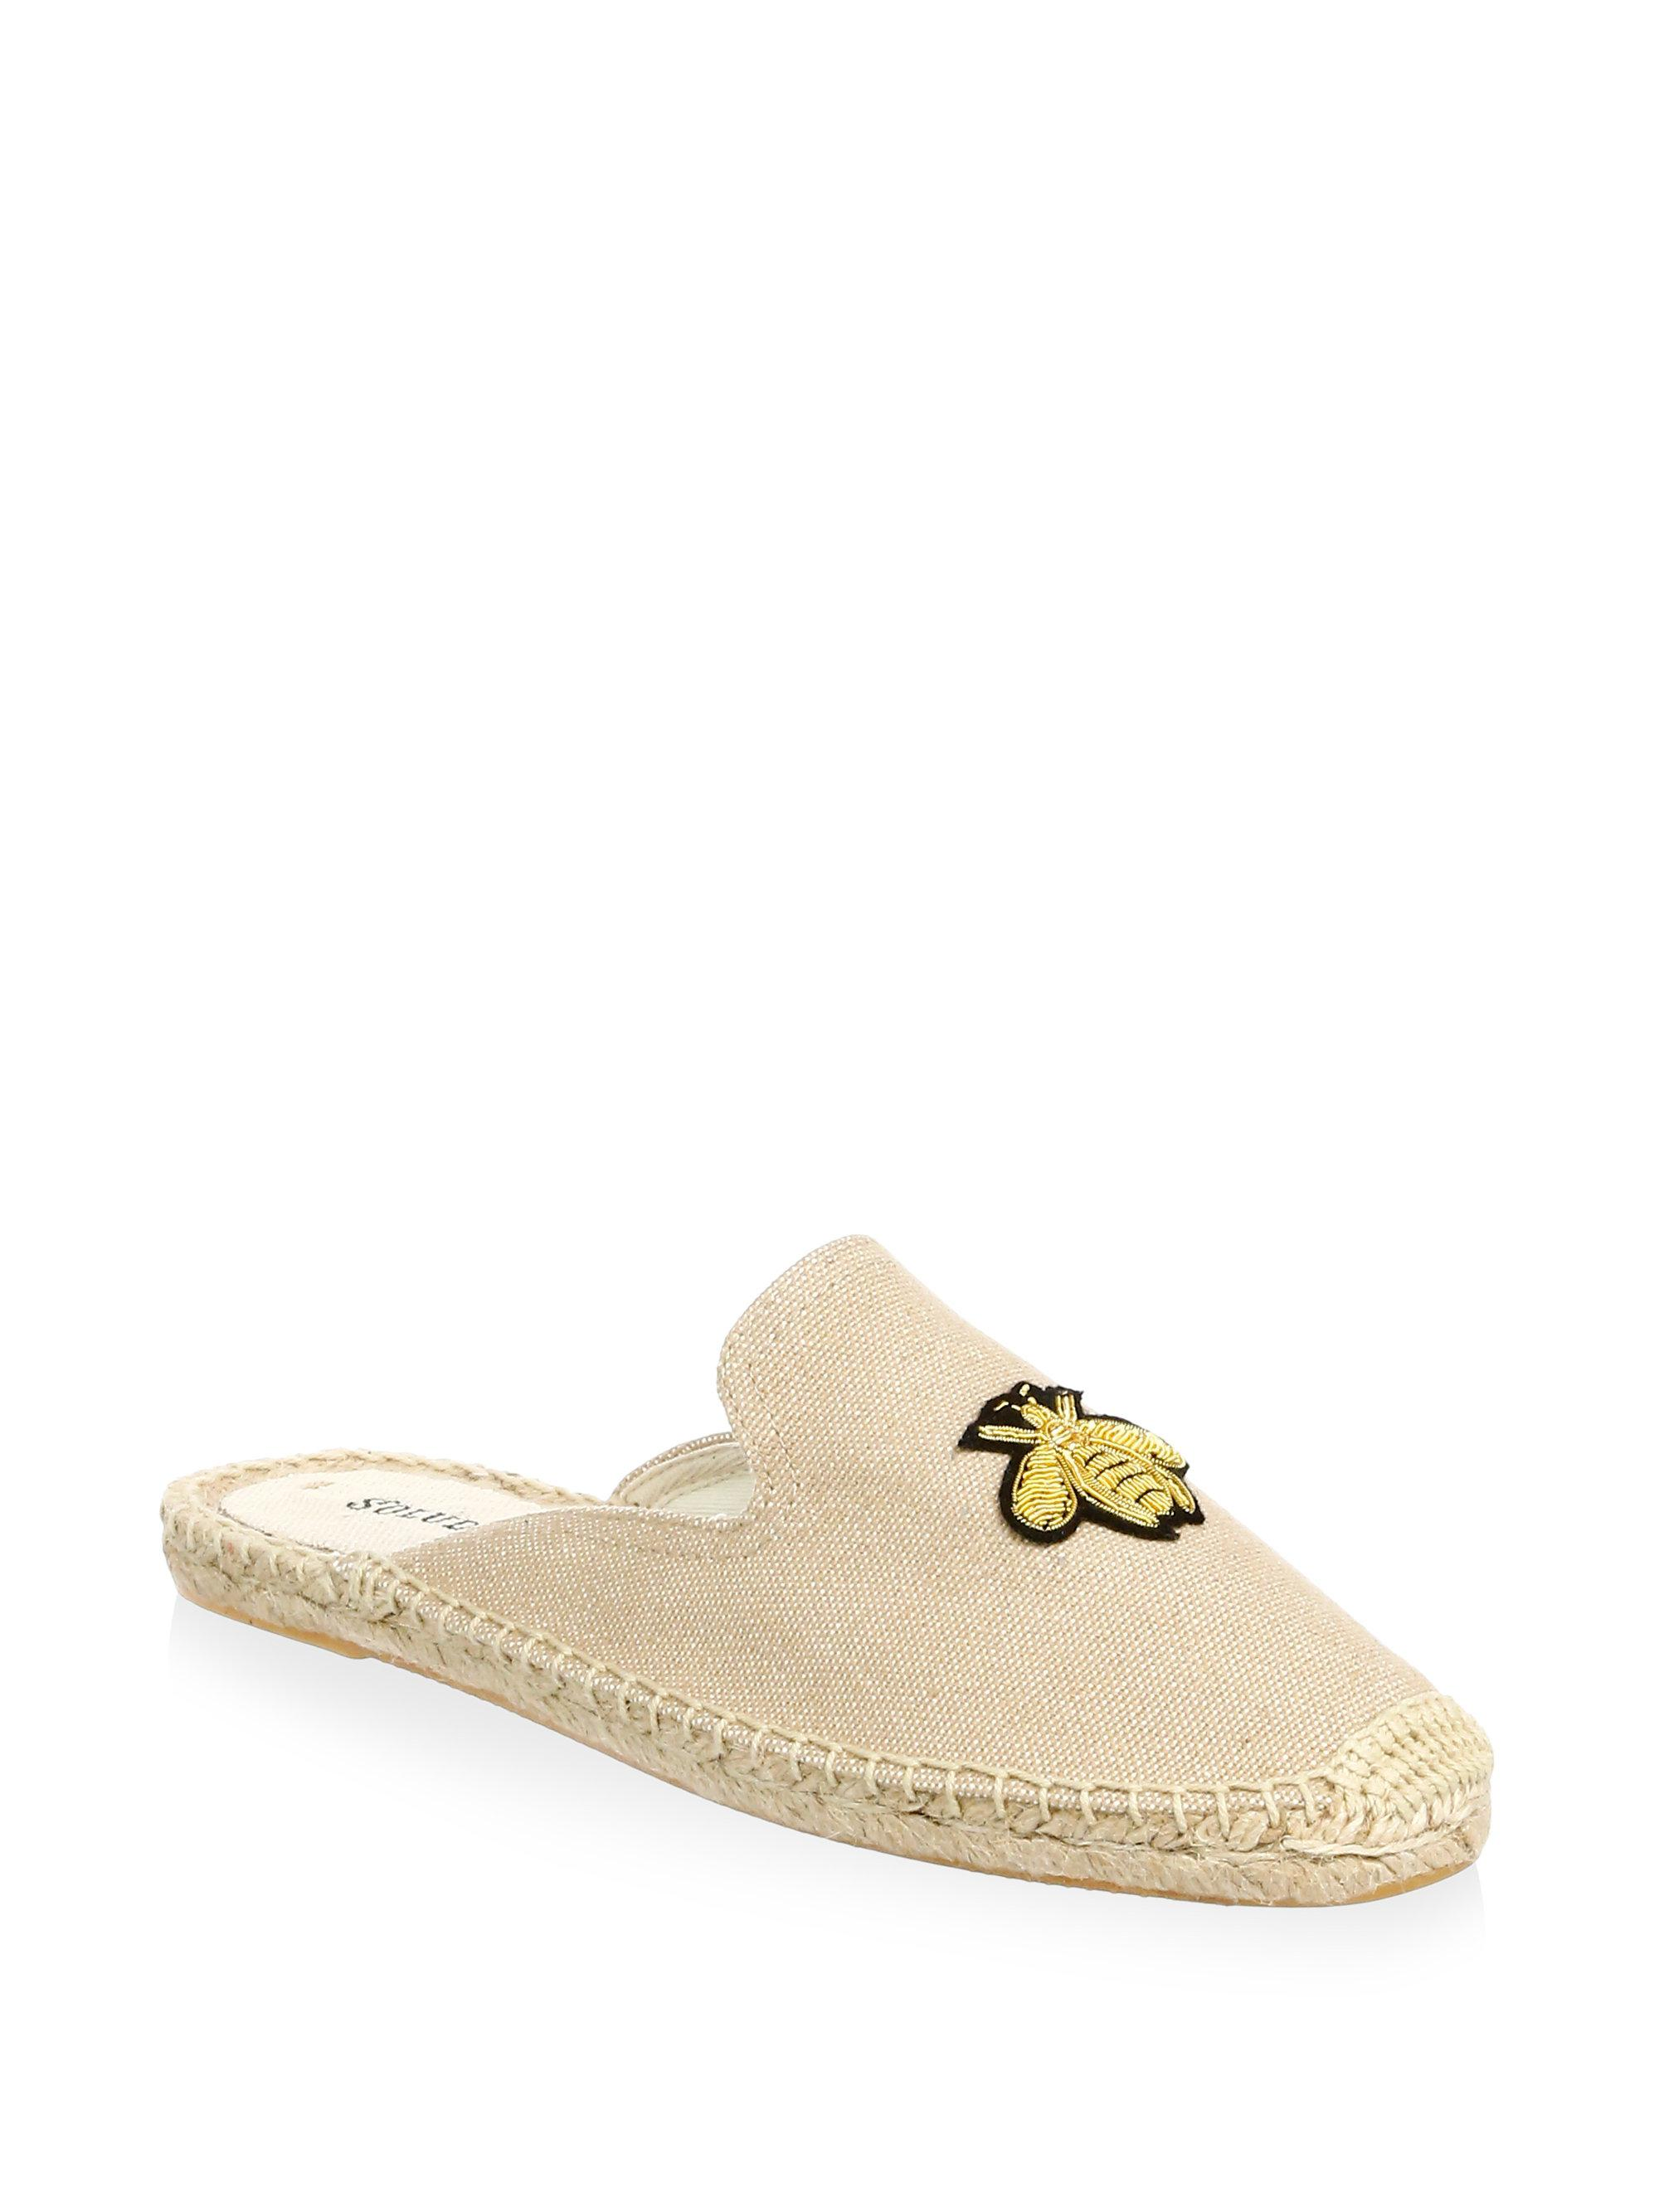 Soludos Bee Canvas Mules bTEQn3m9iG